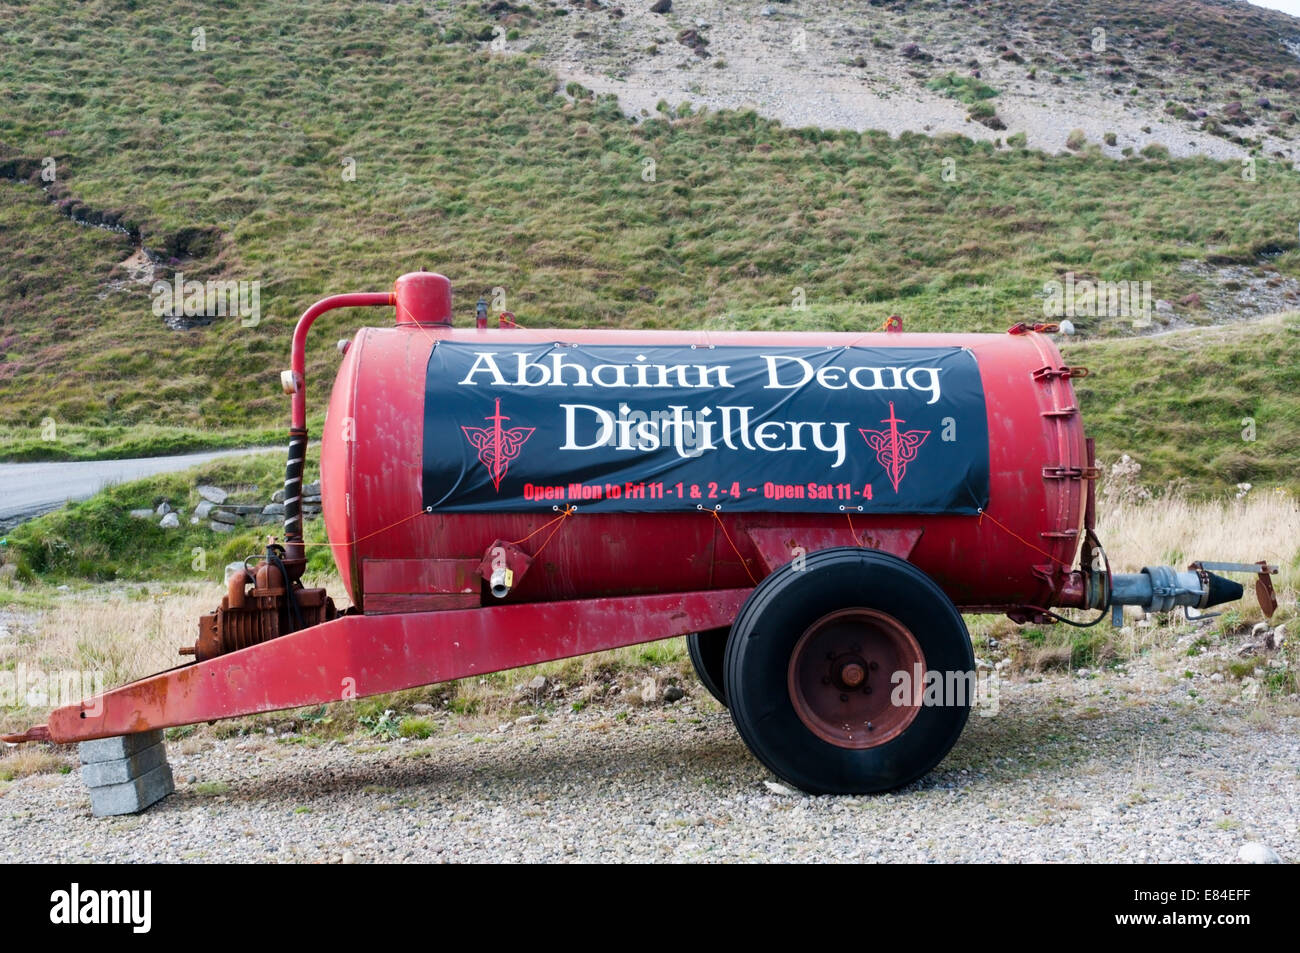 A sign for the Abhainn Dearg single malt whisky distillery on the Isle of Lewis in the Outer Hebrides. - Stock Image